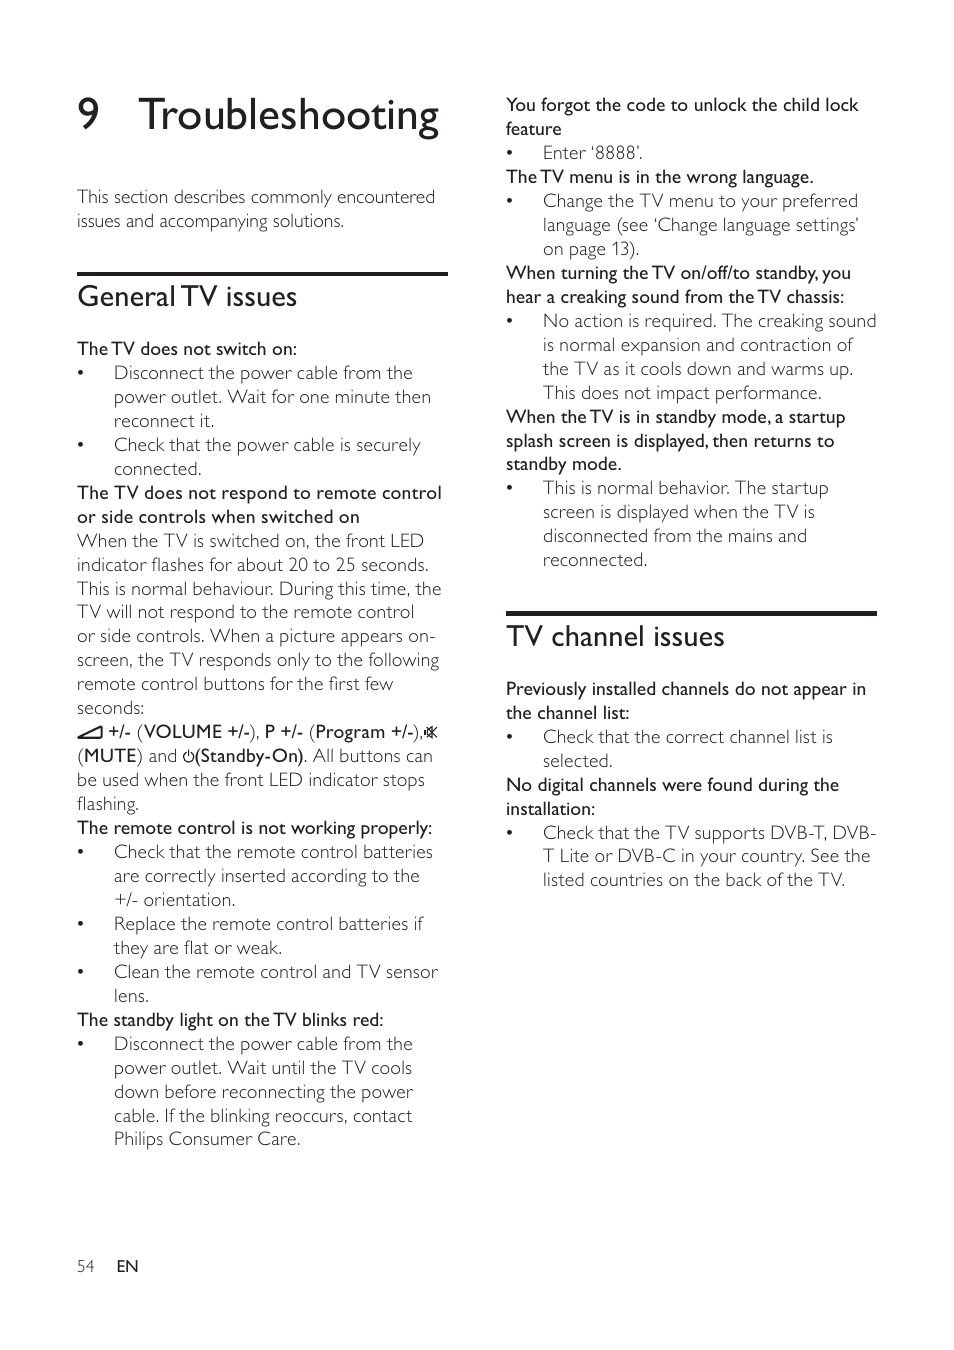 9 troubleshooting, Tv channel issues, General tv issues | Philips